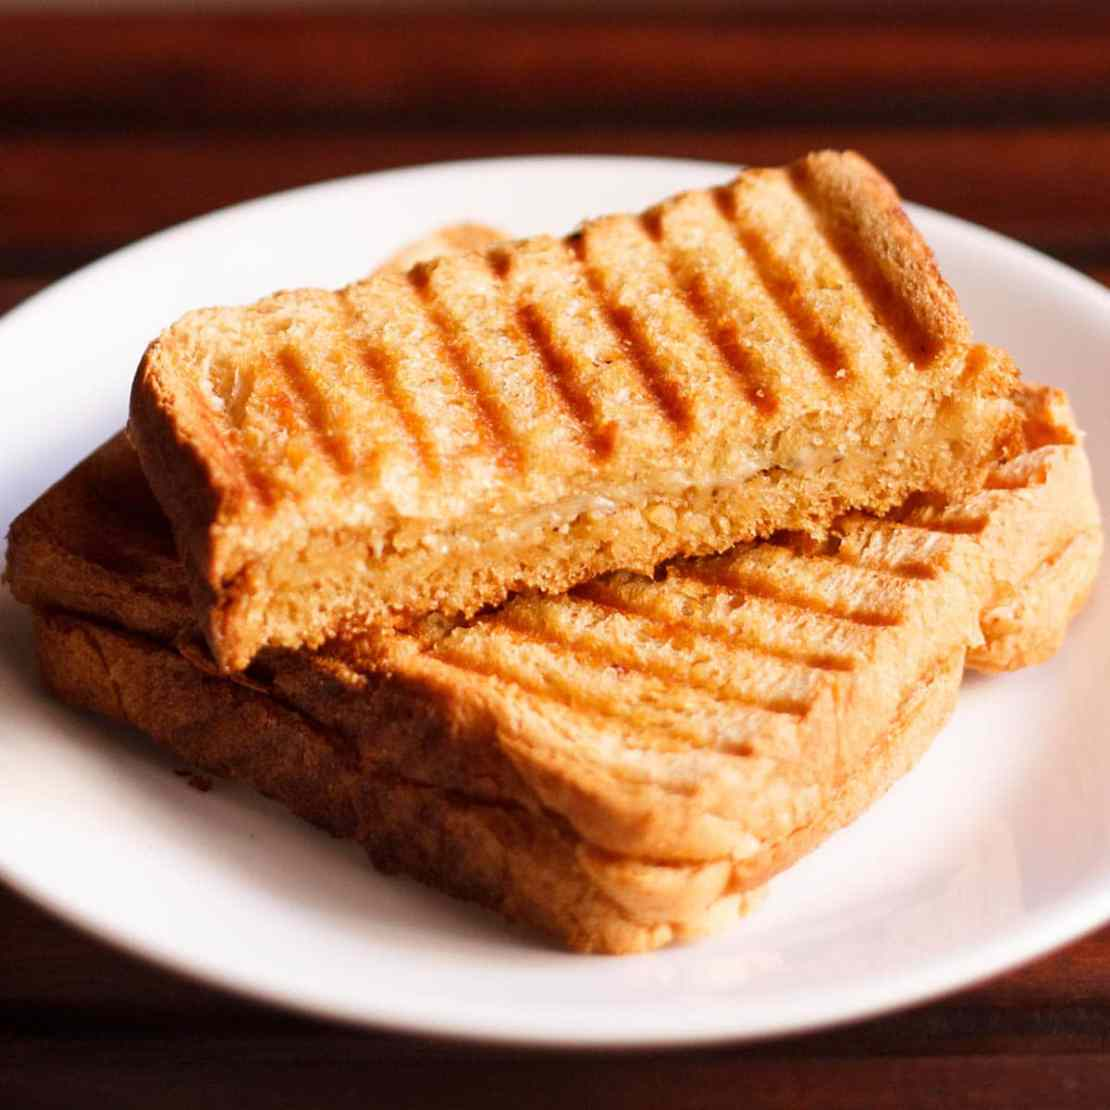 cheese sandwiches on a white plate on a dark brown table